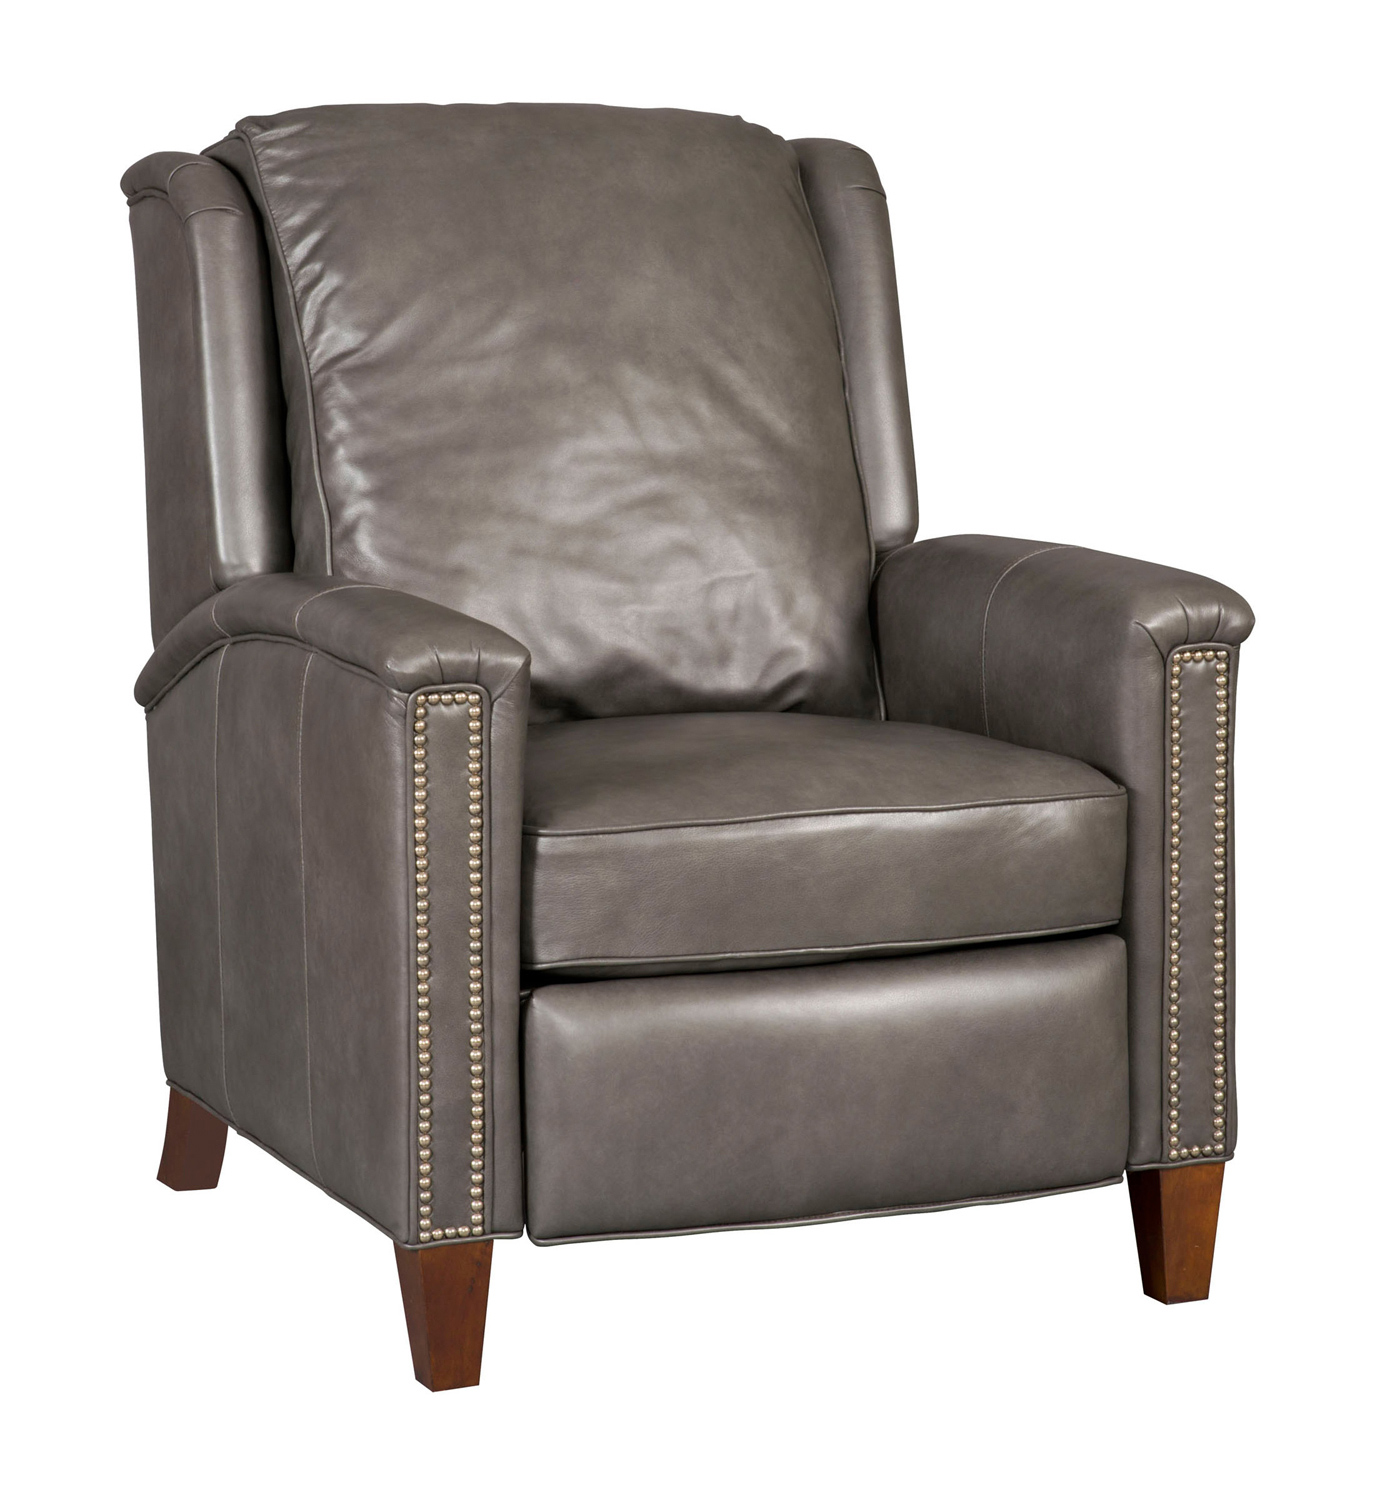 High Leg Leather Recliner Chair in Charcoal